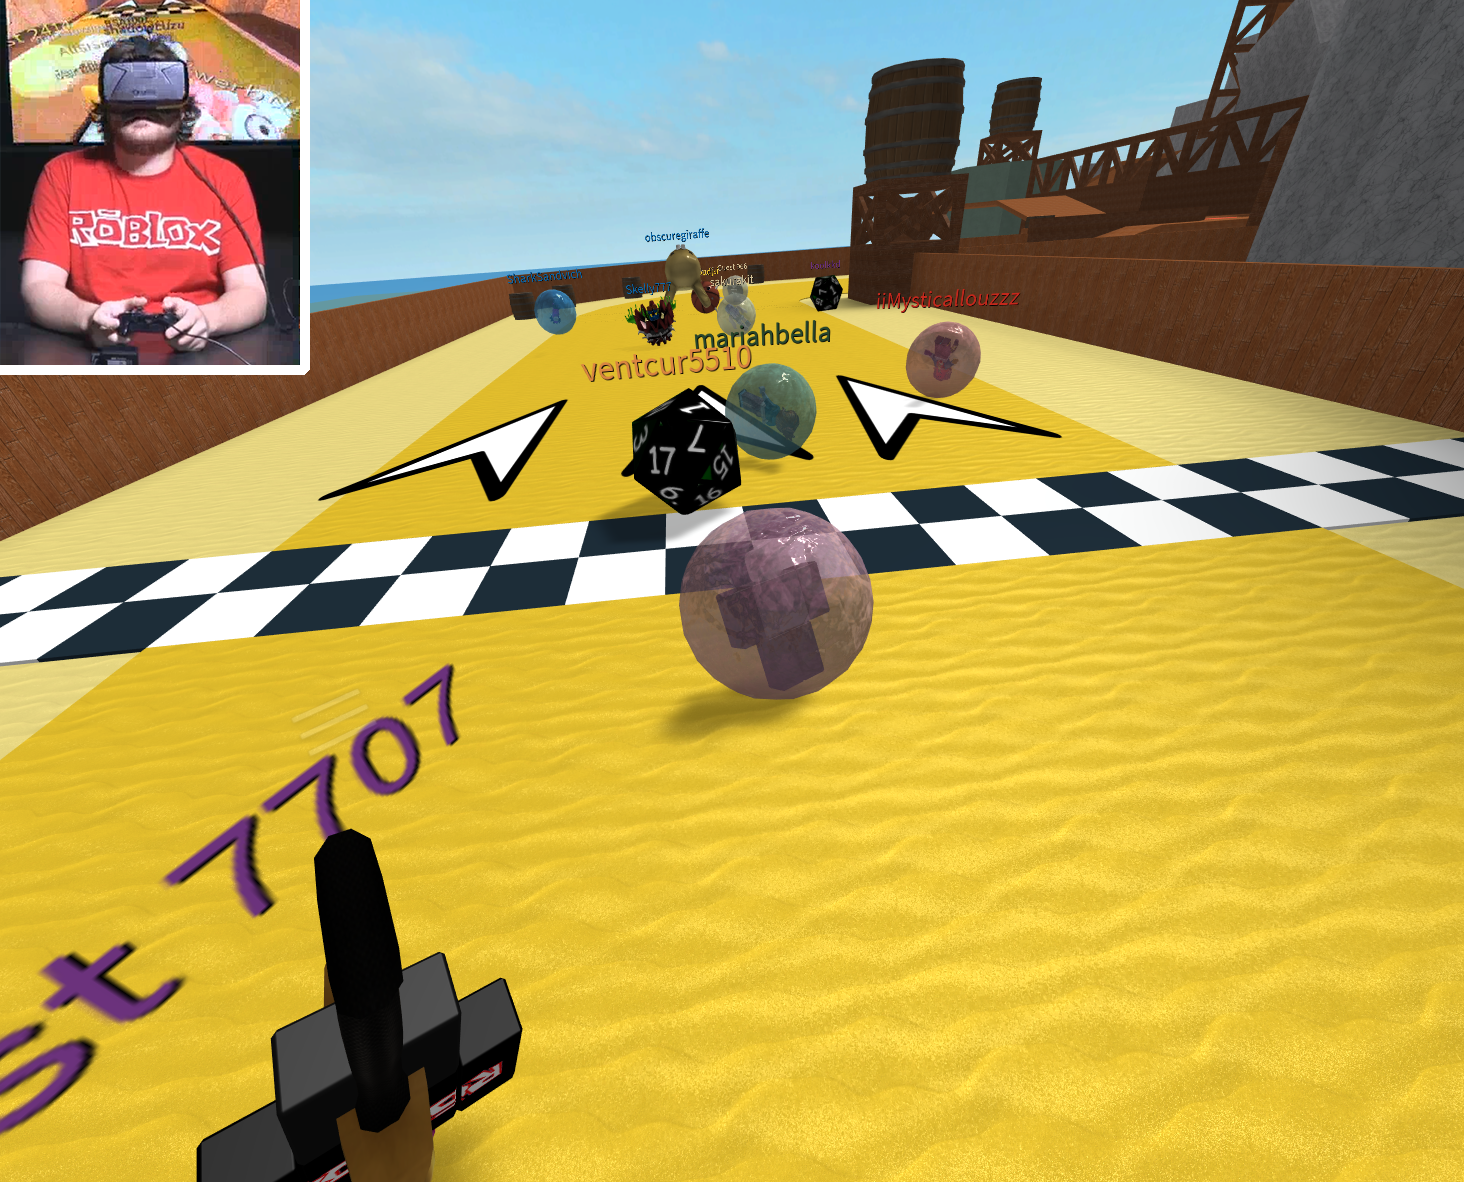 Can You Play Roblox On Vr In 2019 Roblox Officially Gets Vr Support Becomes The Largest Social Vr Platform